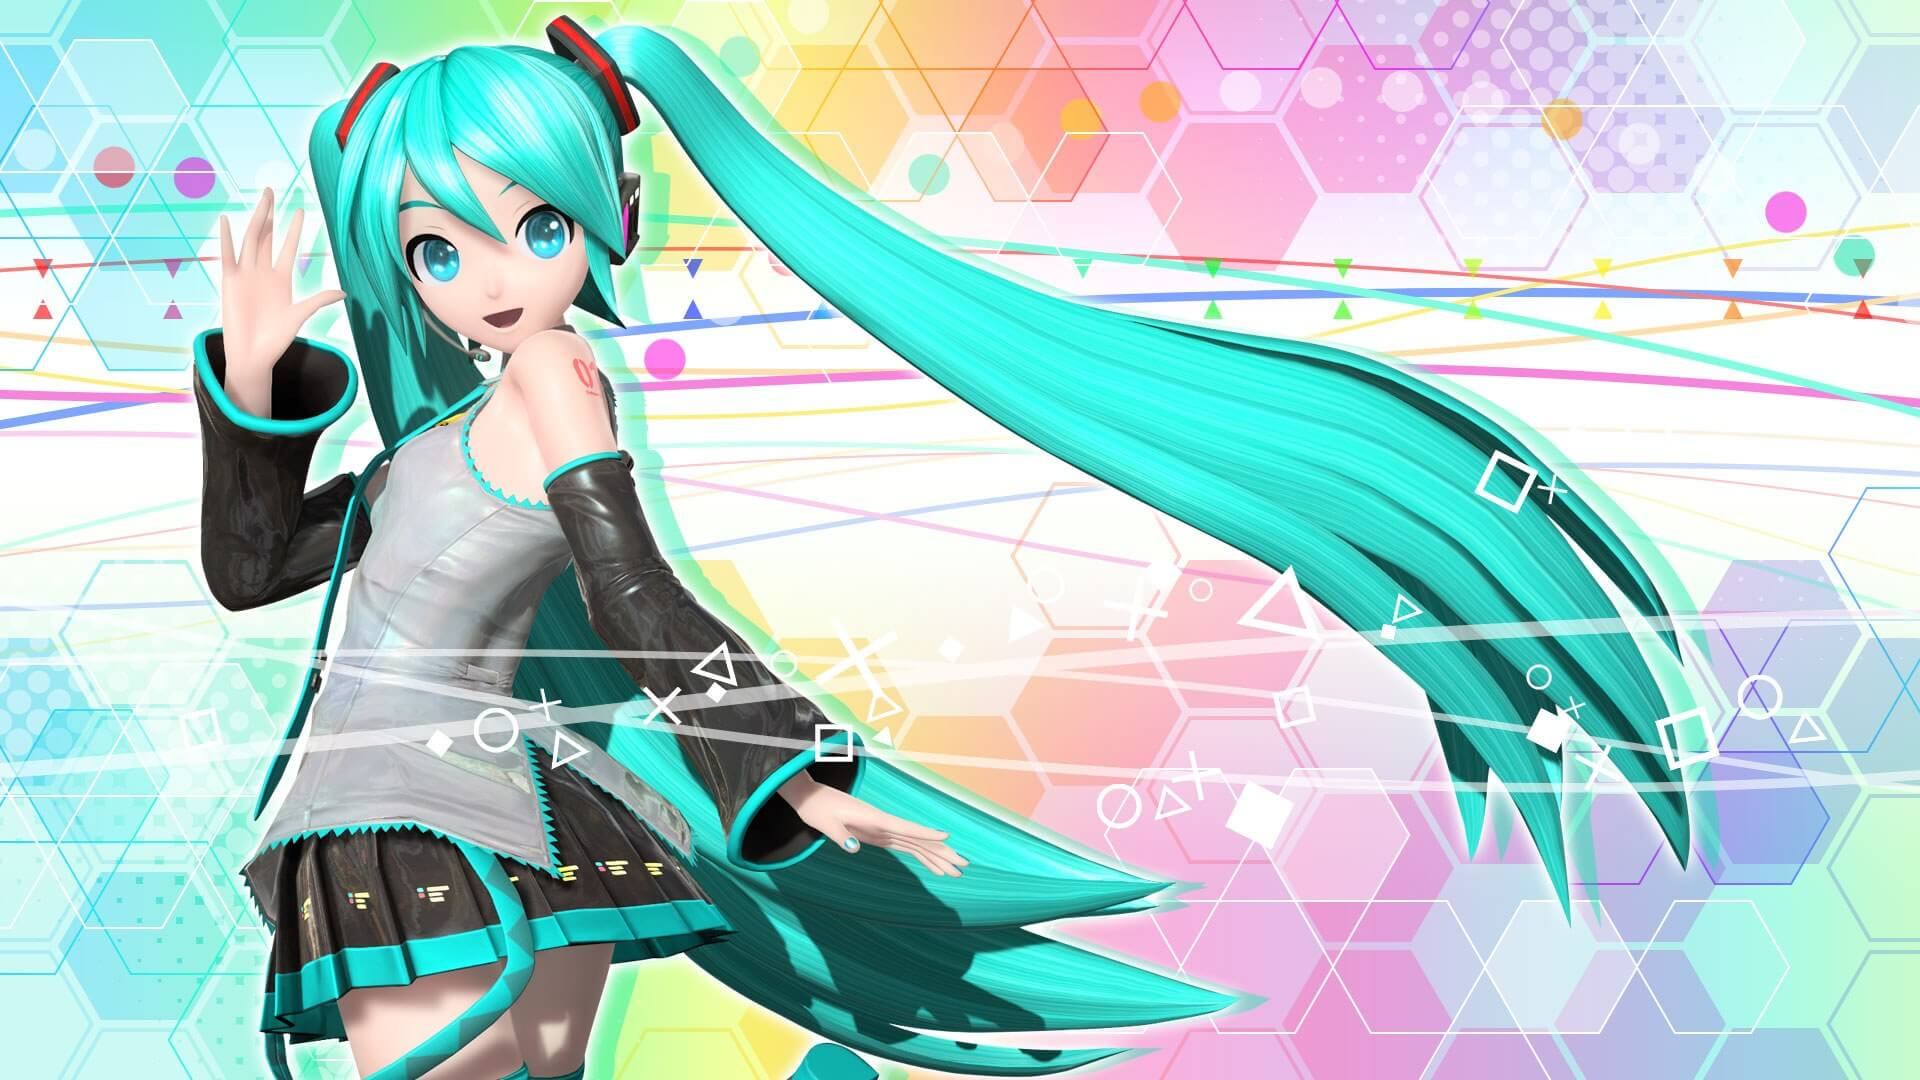 Japanese man marries anime hologram of Hatsune Miku - TechSpot